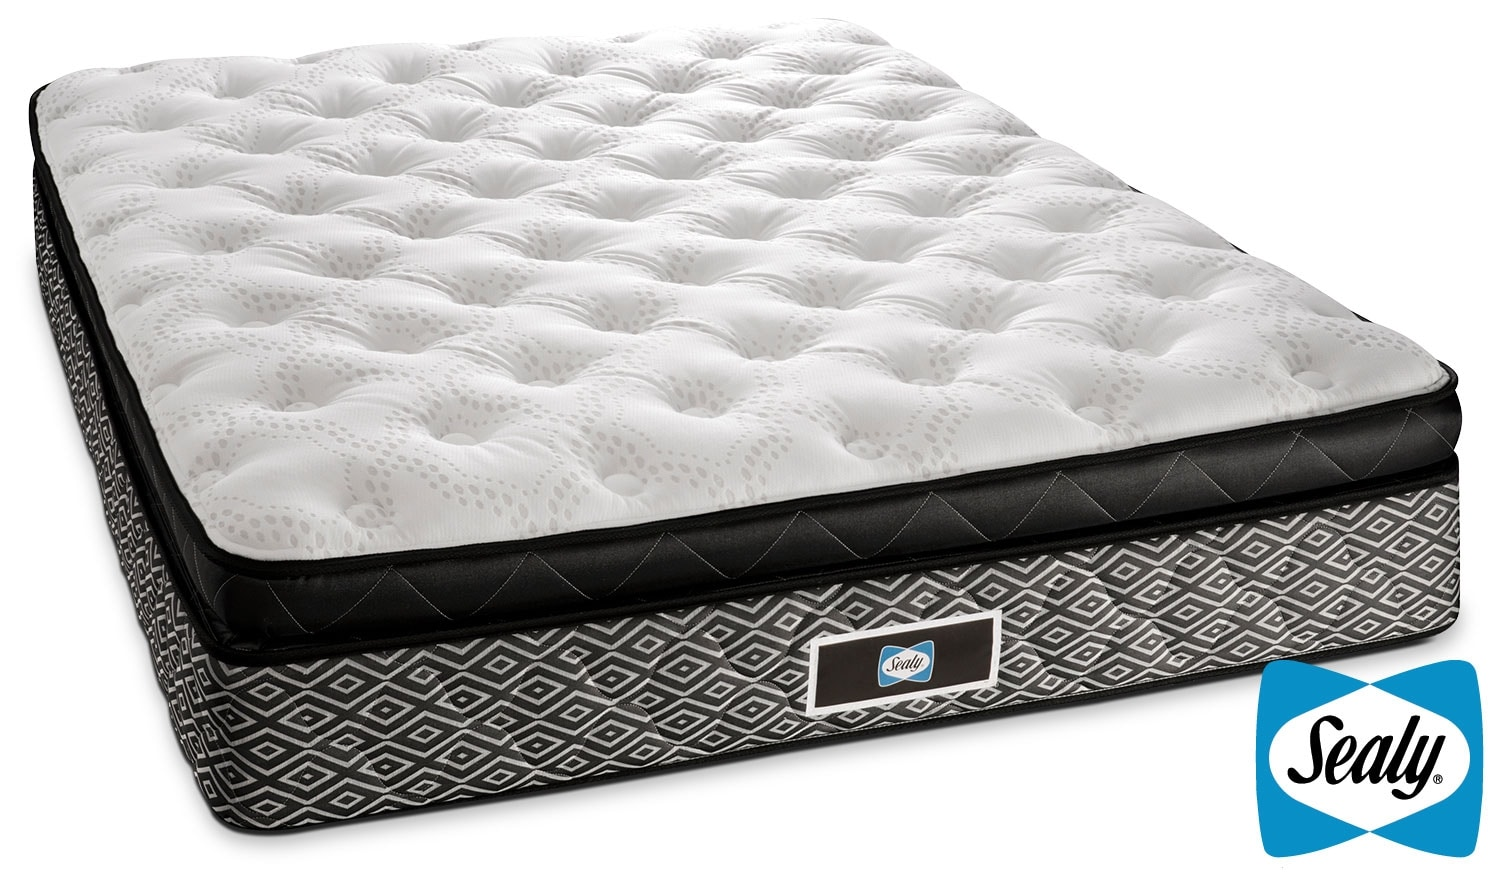 Mattresses and Bedding - Sealy Echo Firm Full Mattress